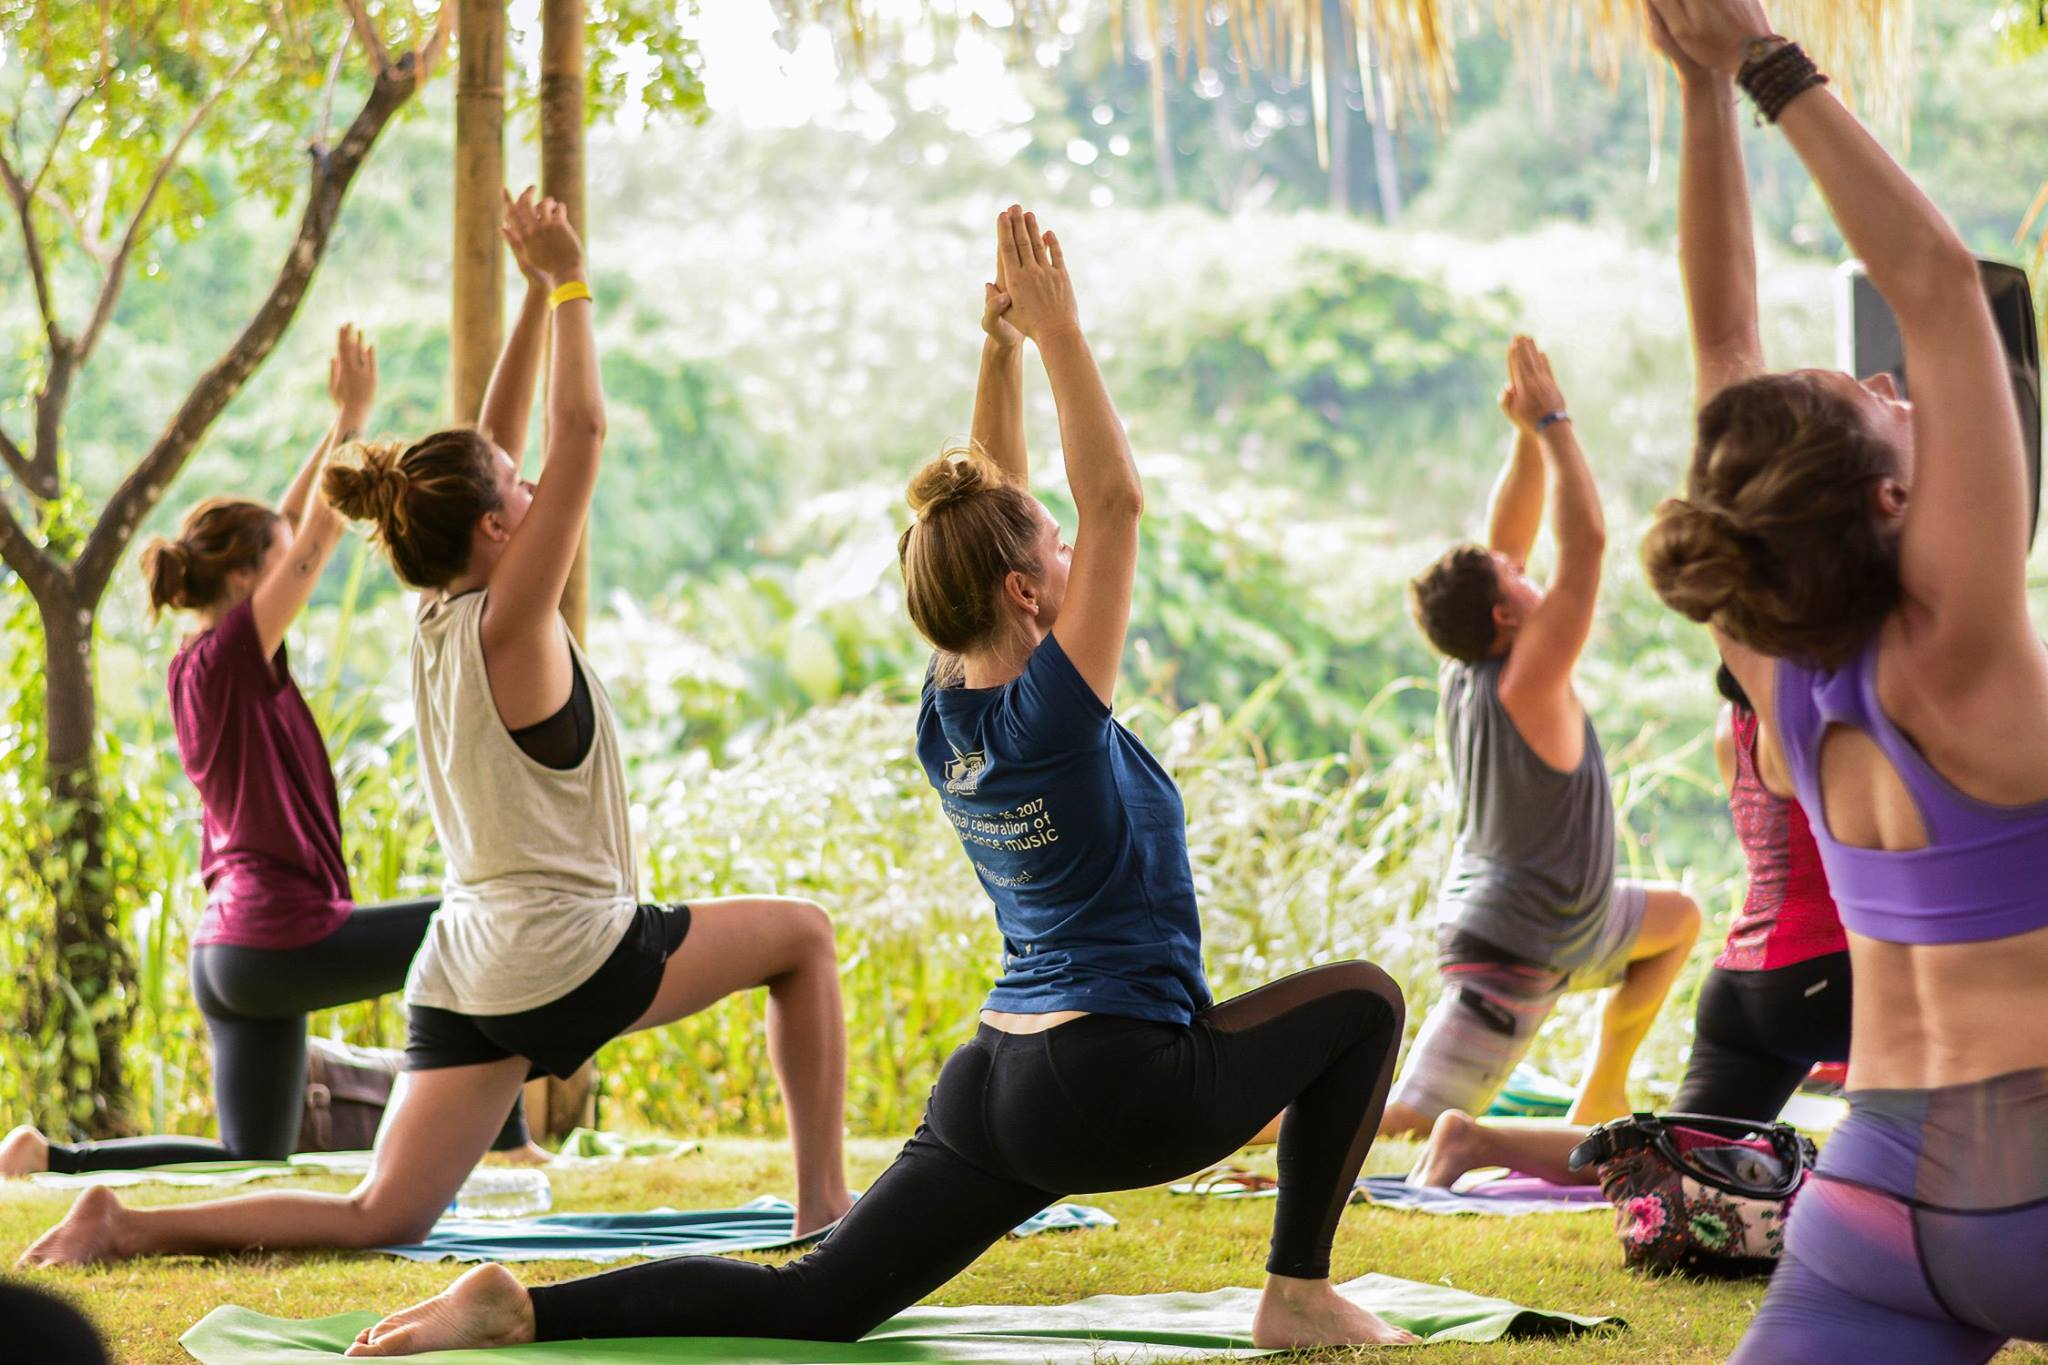 Yoga against junglescapes, no big deal / Photo credit: Raychel Kaye Photography